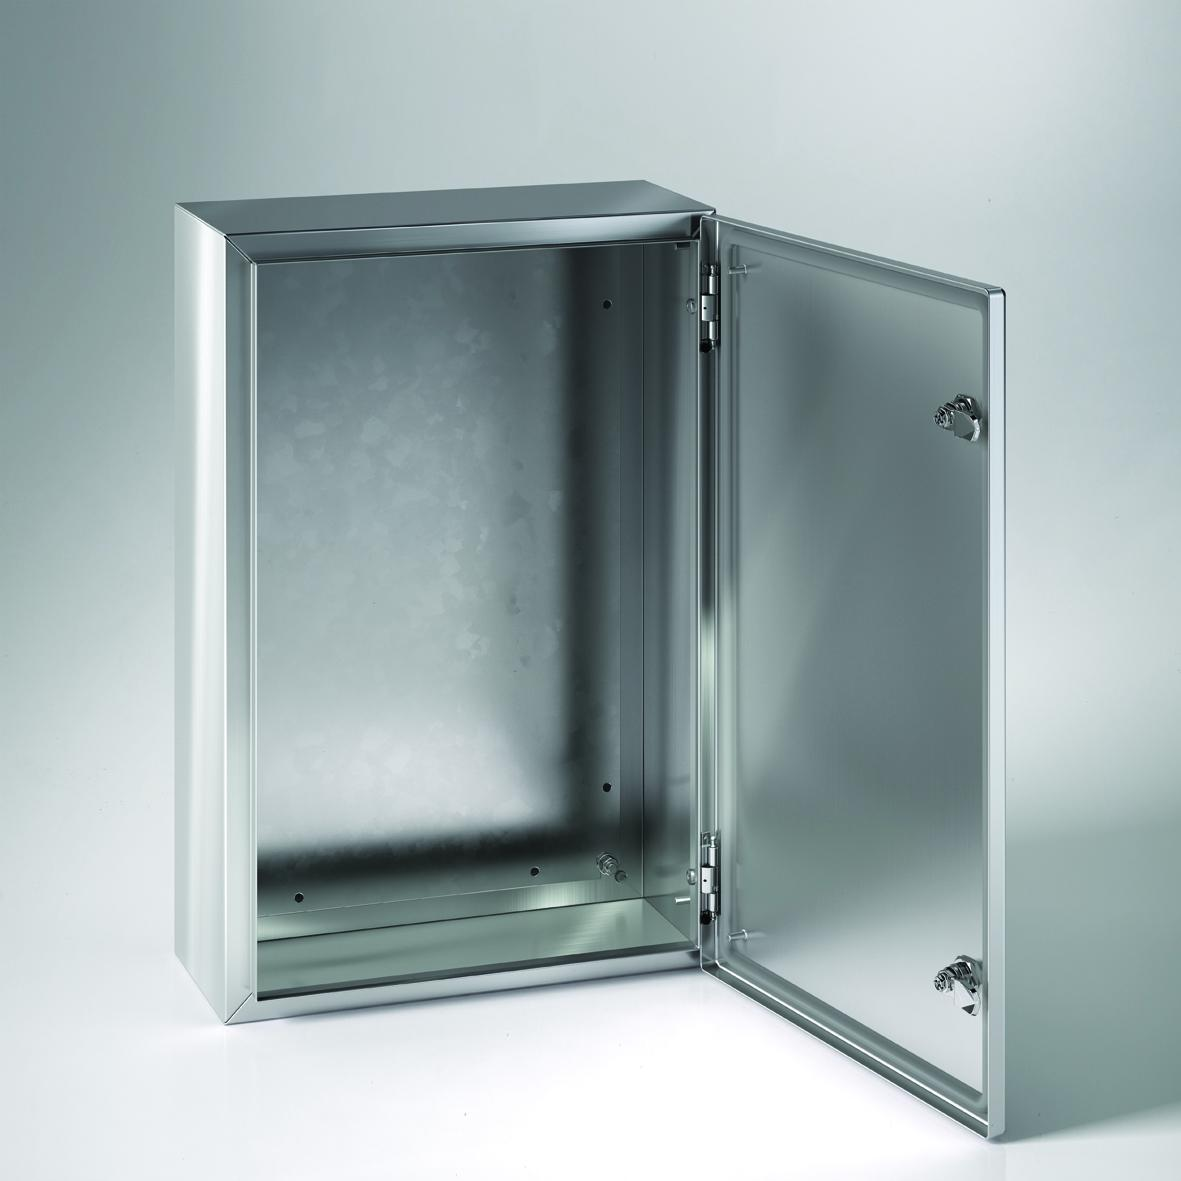 or a high level of corrosion protection, the stainless steel enclosures grant maximum performance and functionality